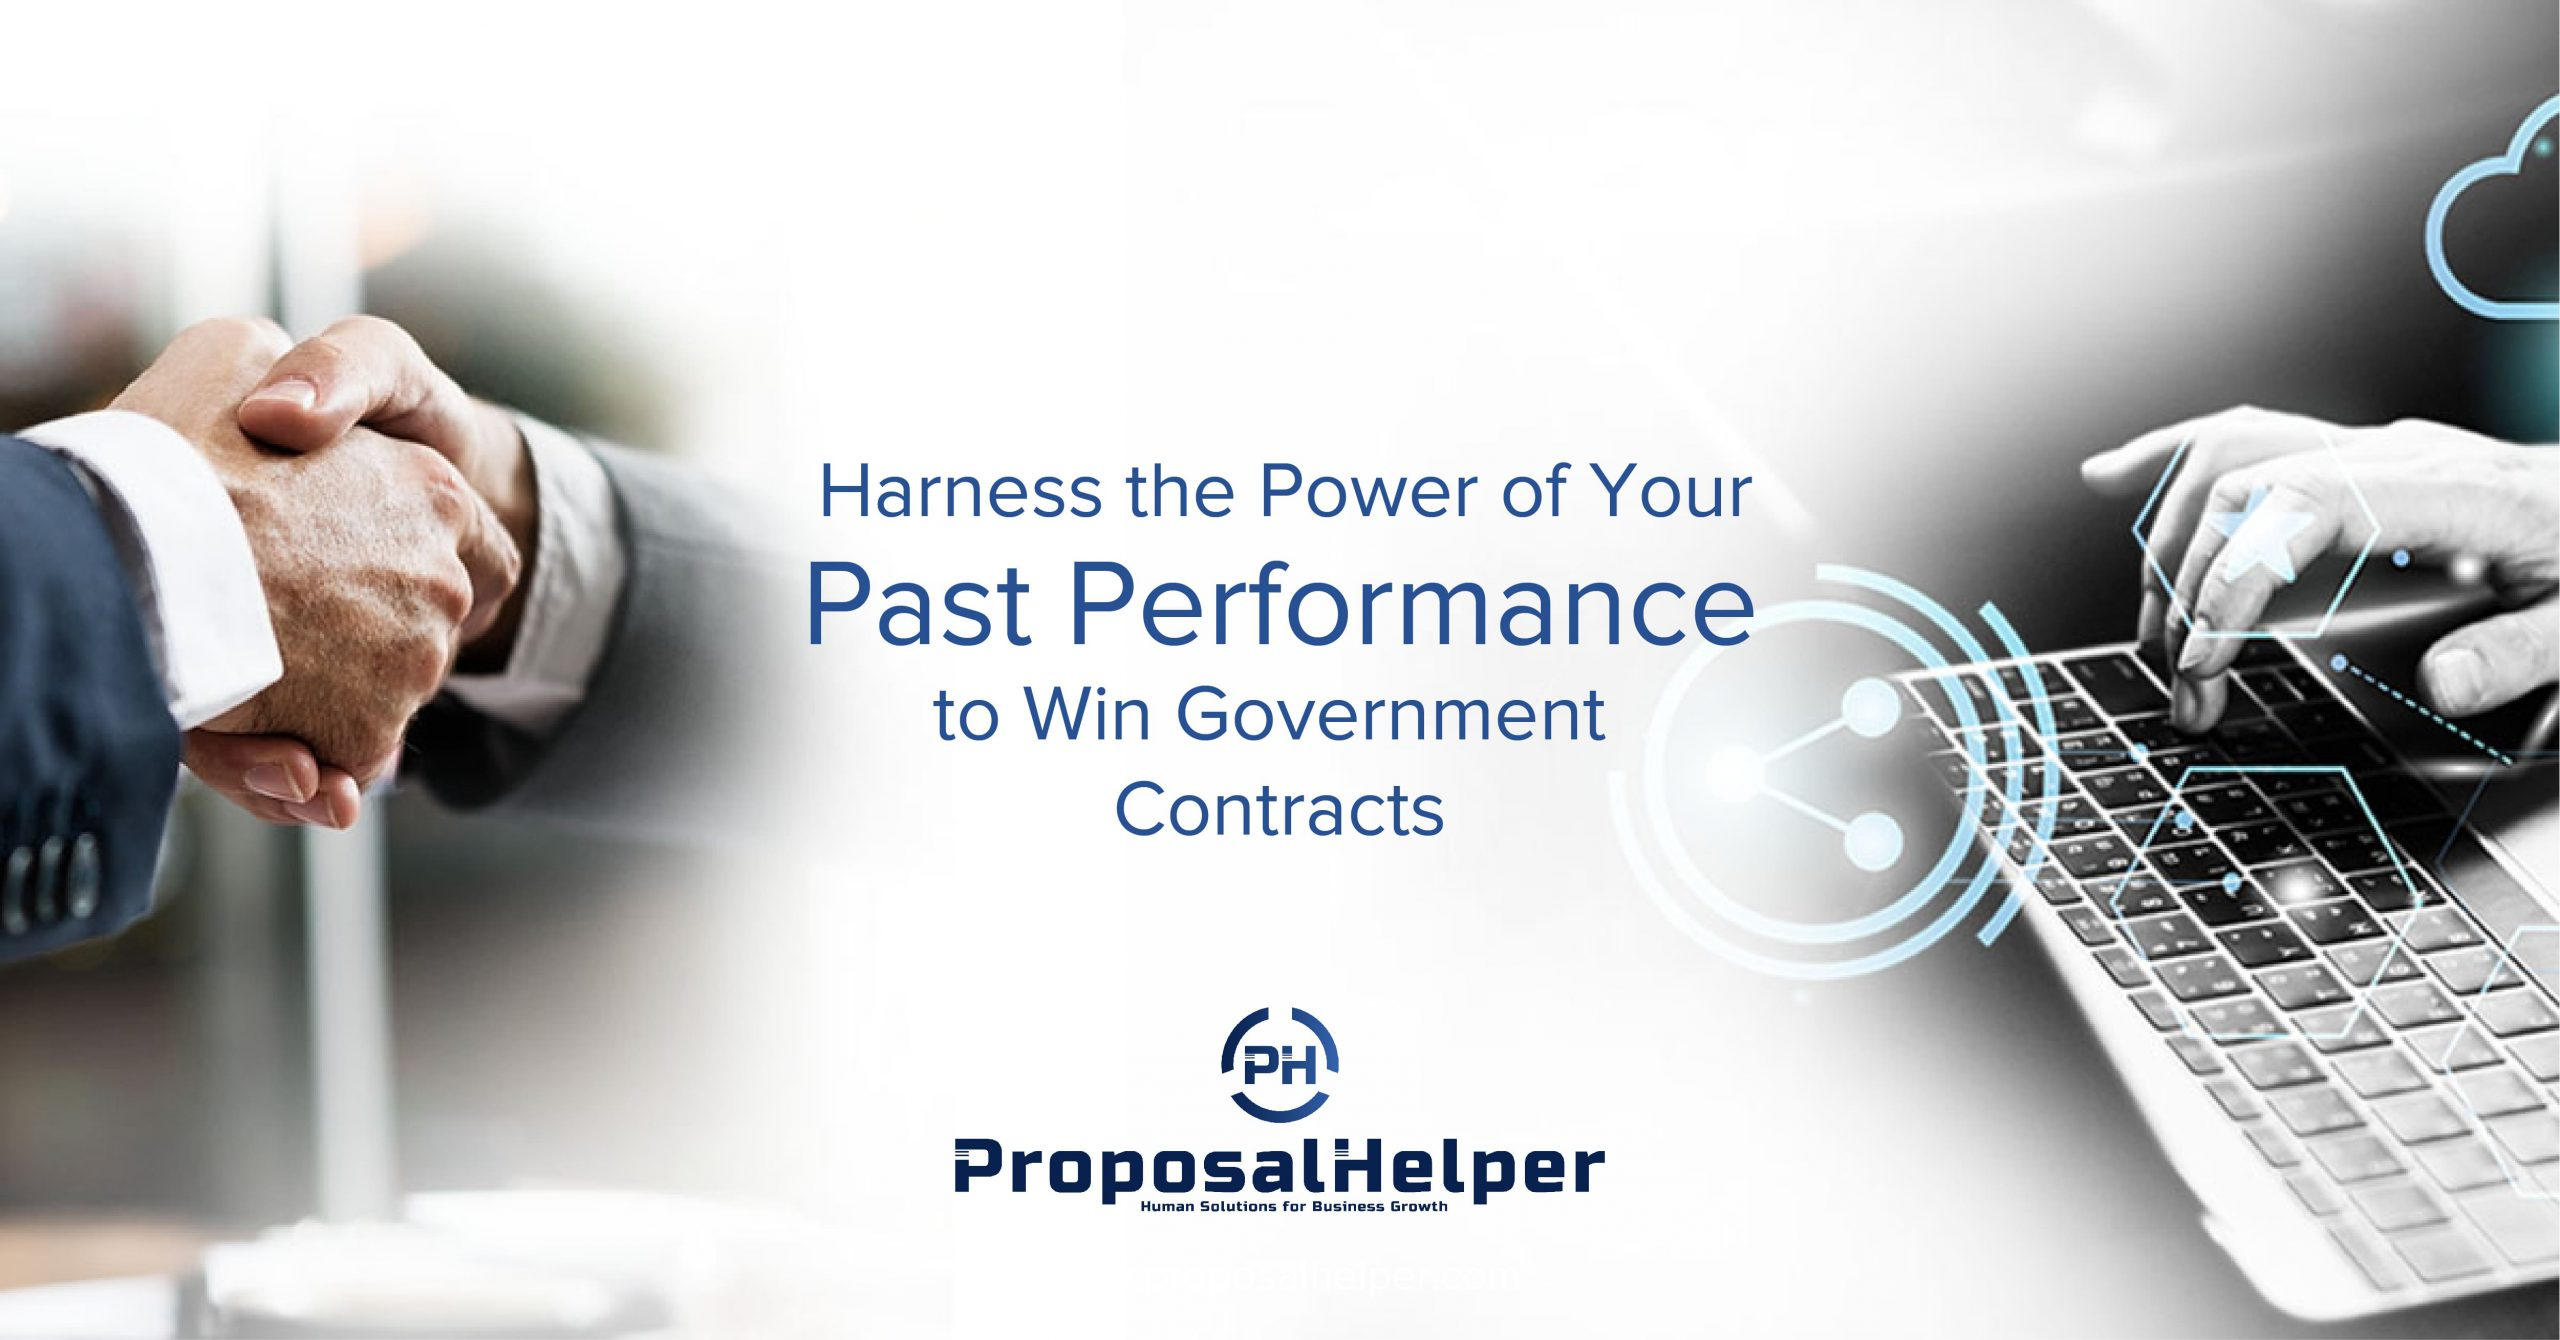 Harness the Power of Your Past Performance to Win Government Contracts